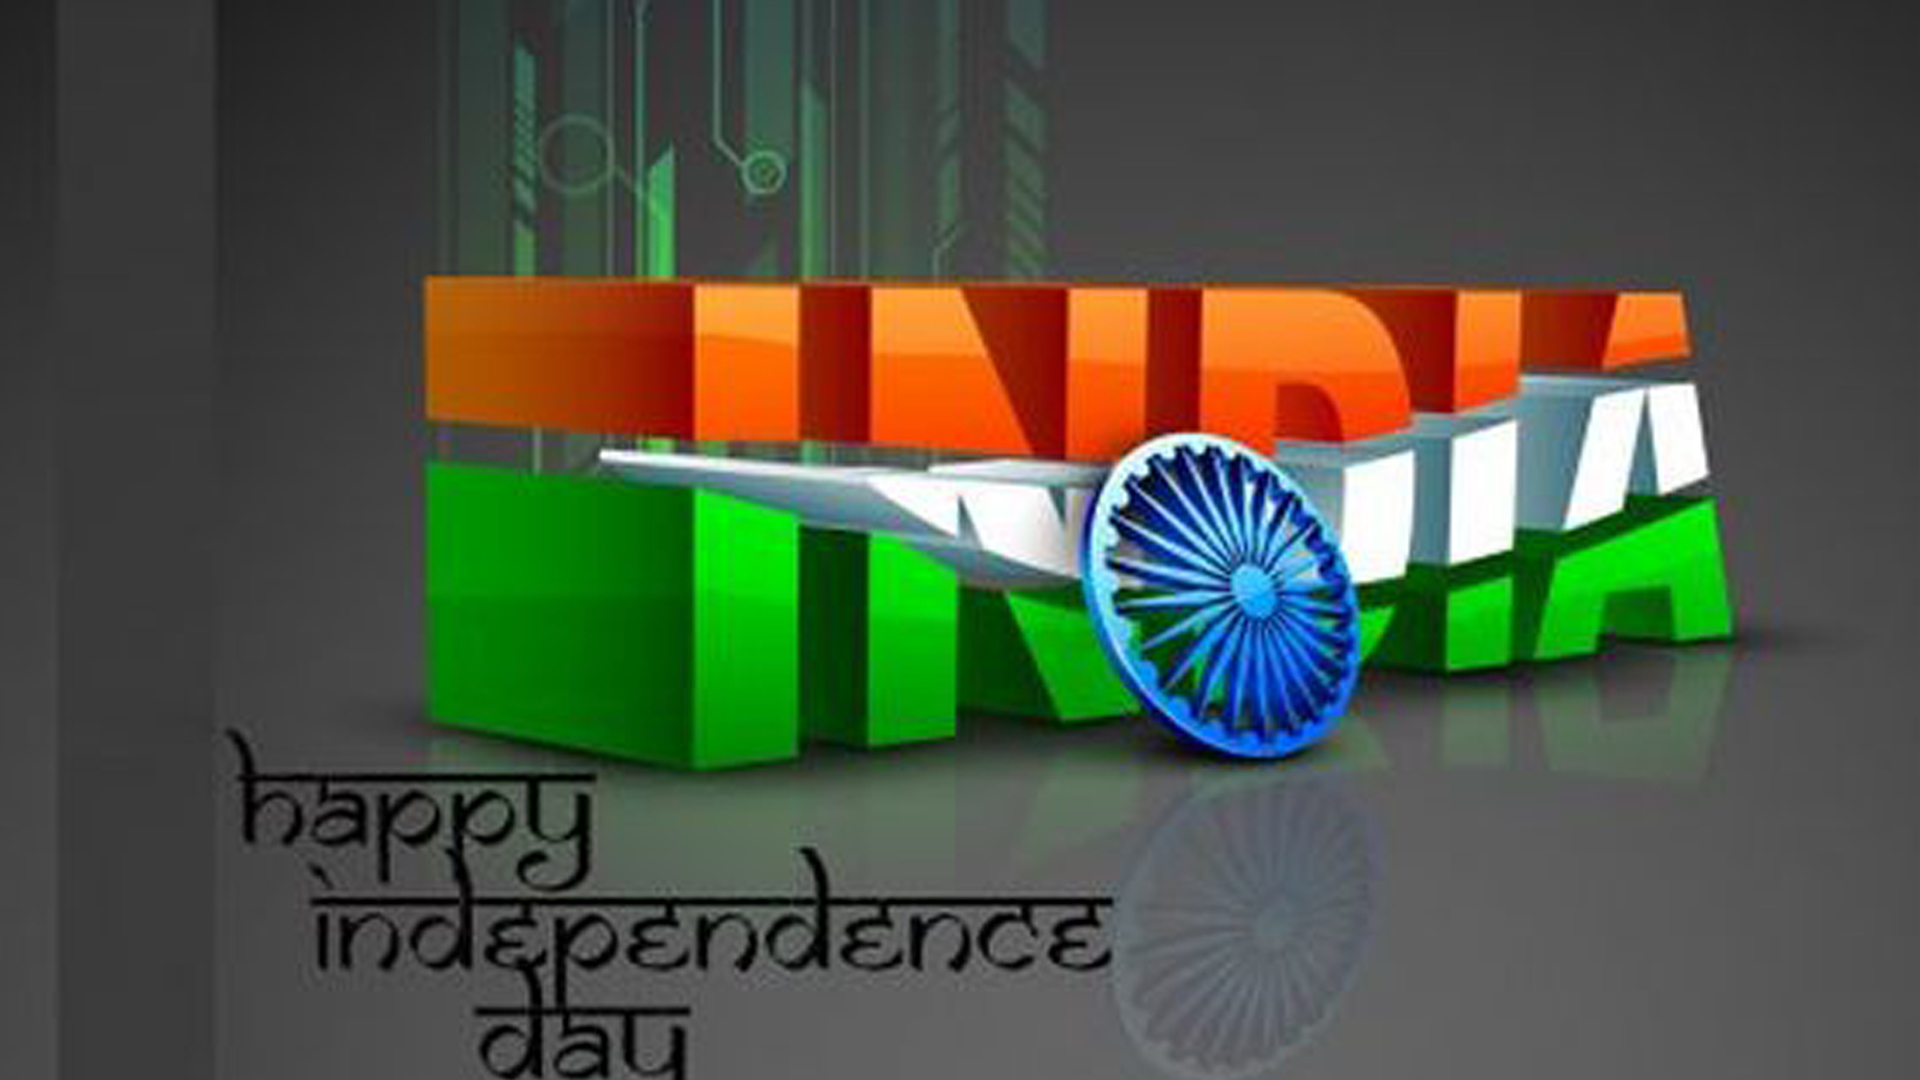 Indian Flag With Different Views: 3D India Text For Independence Day Wallpaper In HD